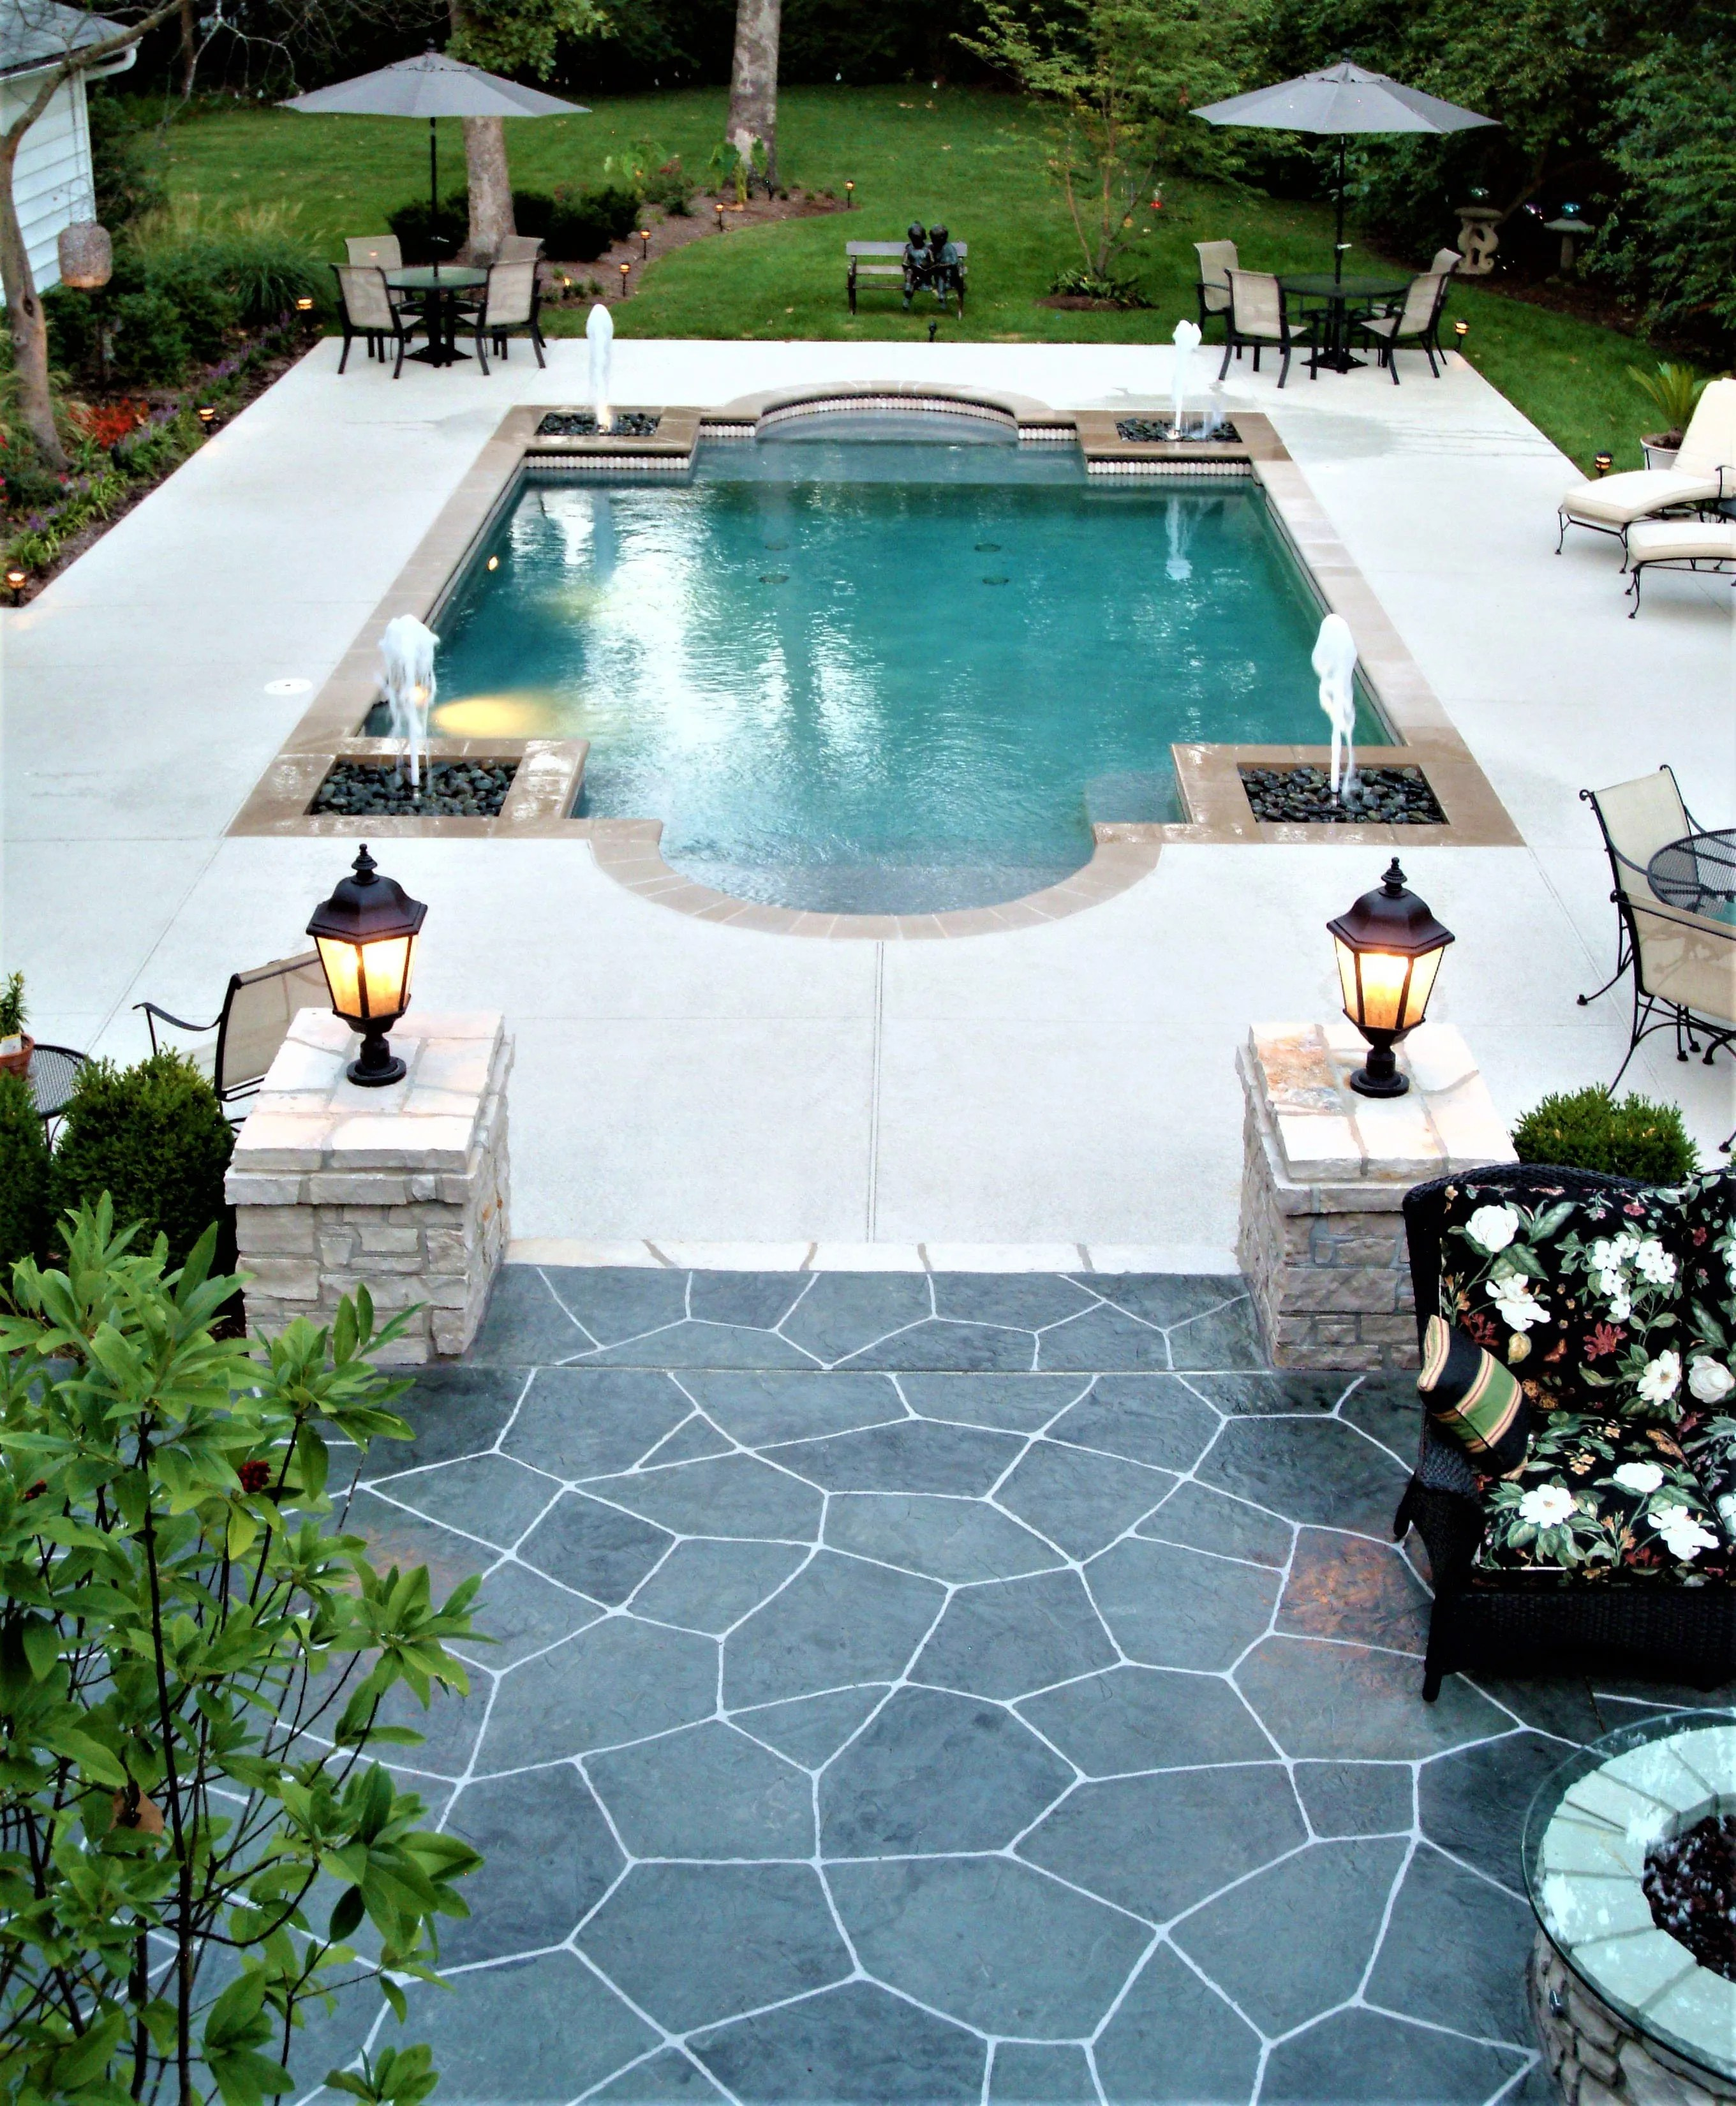 Pool Deck Ideas St Louis, MO | Decorative Concrete Resurfacing on Pool Deck Patio Ideas id=92863